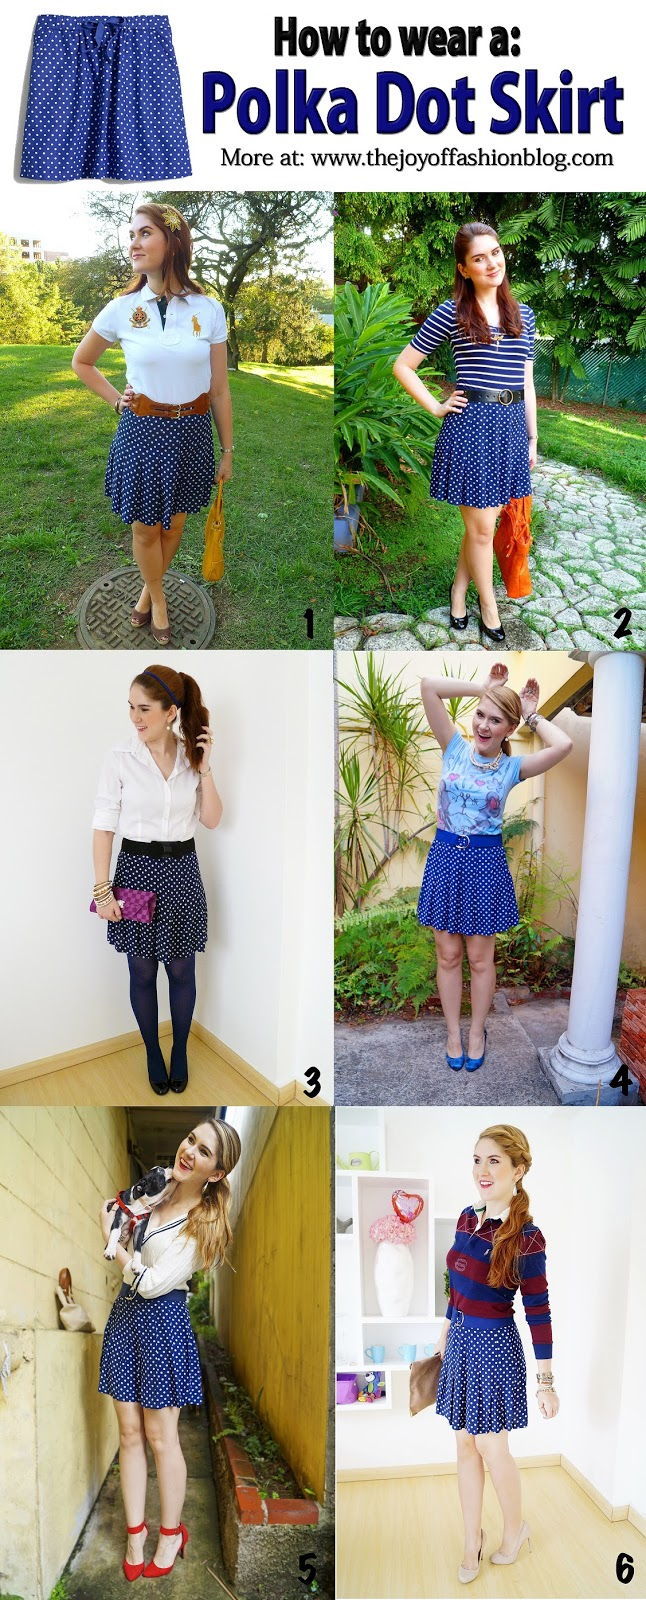 How To Wear a Polka Dot Skirt